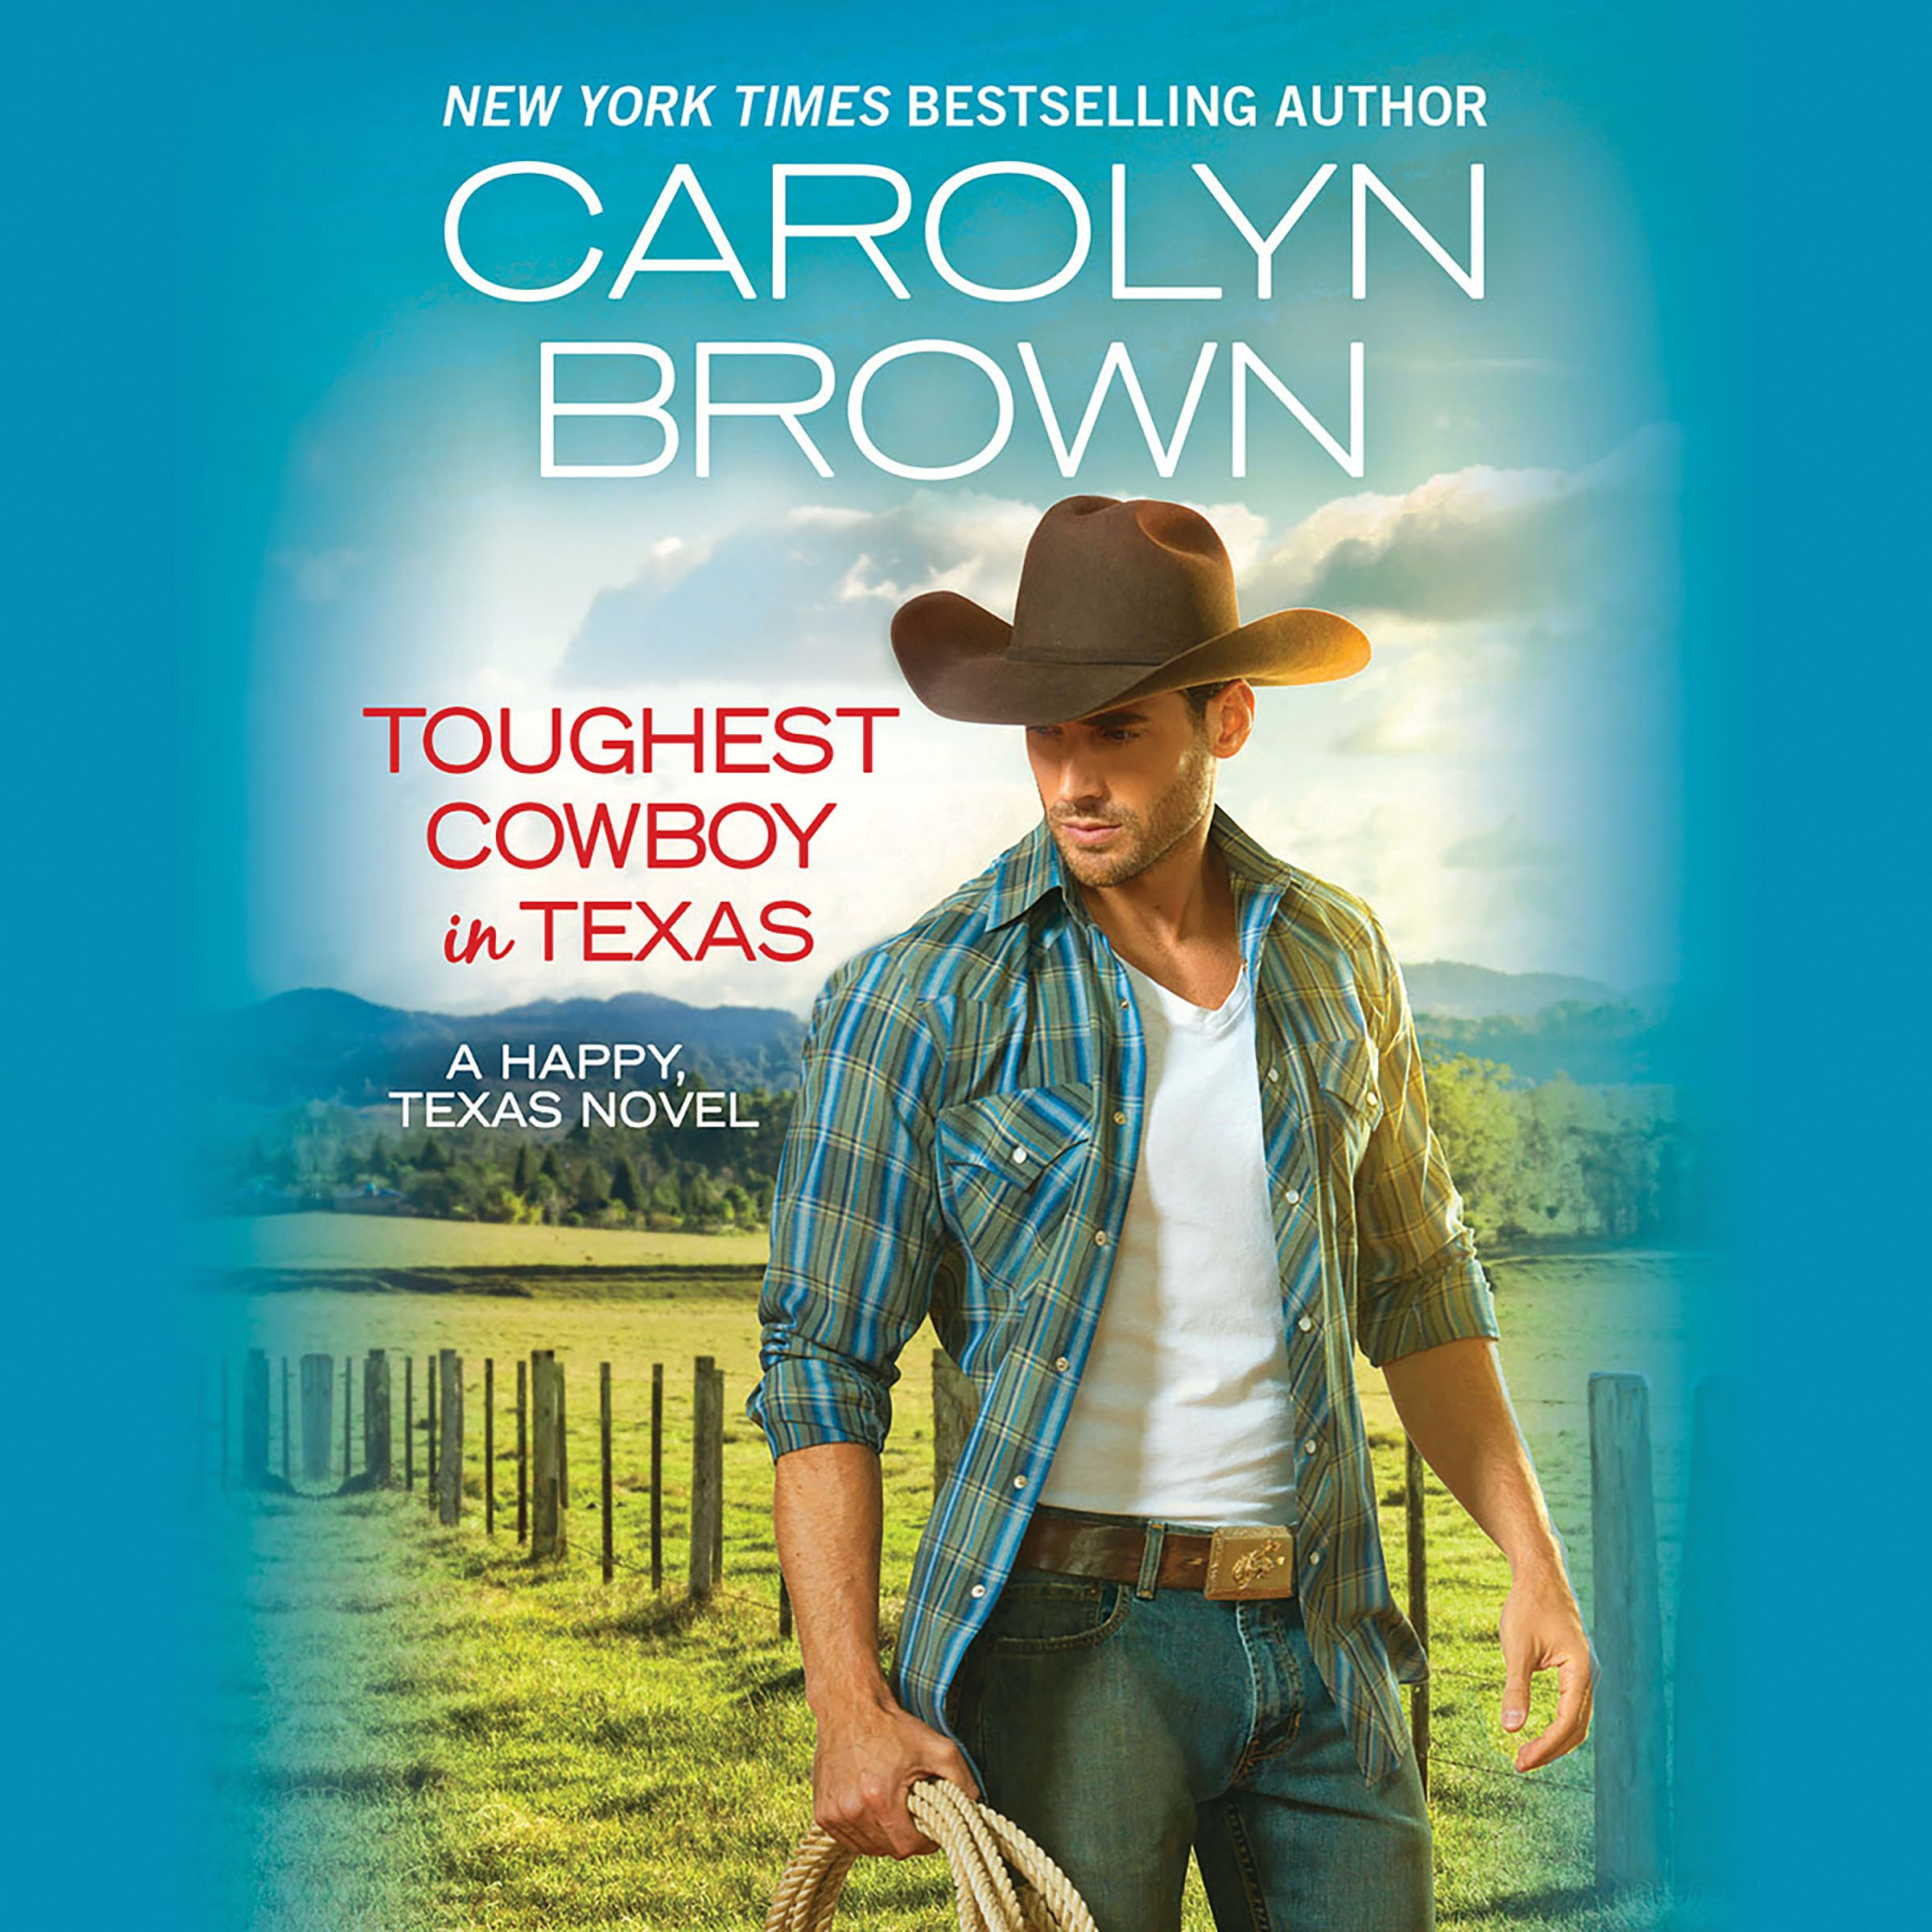 Toughest Cowboy in Texas: Happy, Texas, Book 1 - A Western Romance